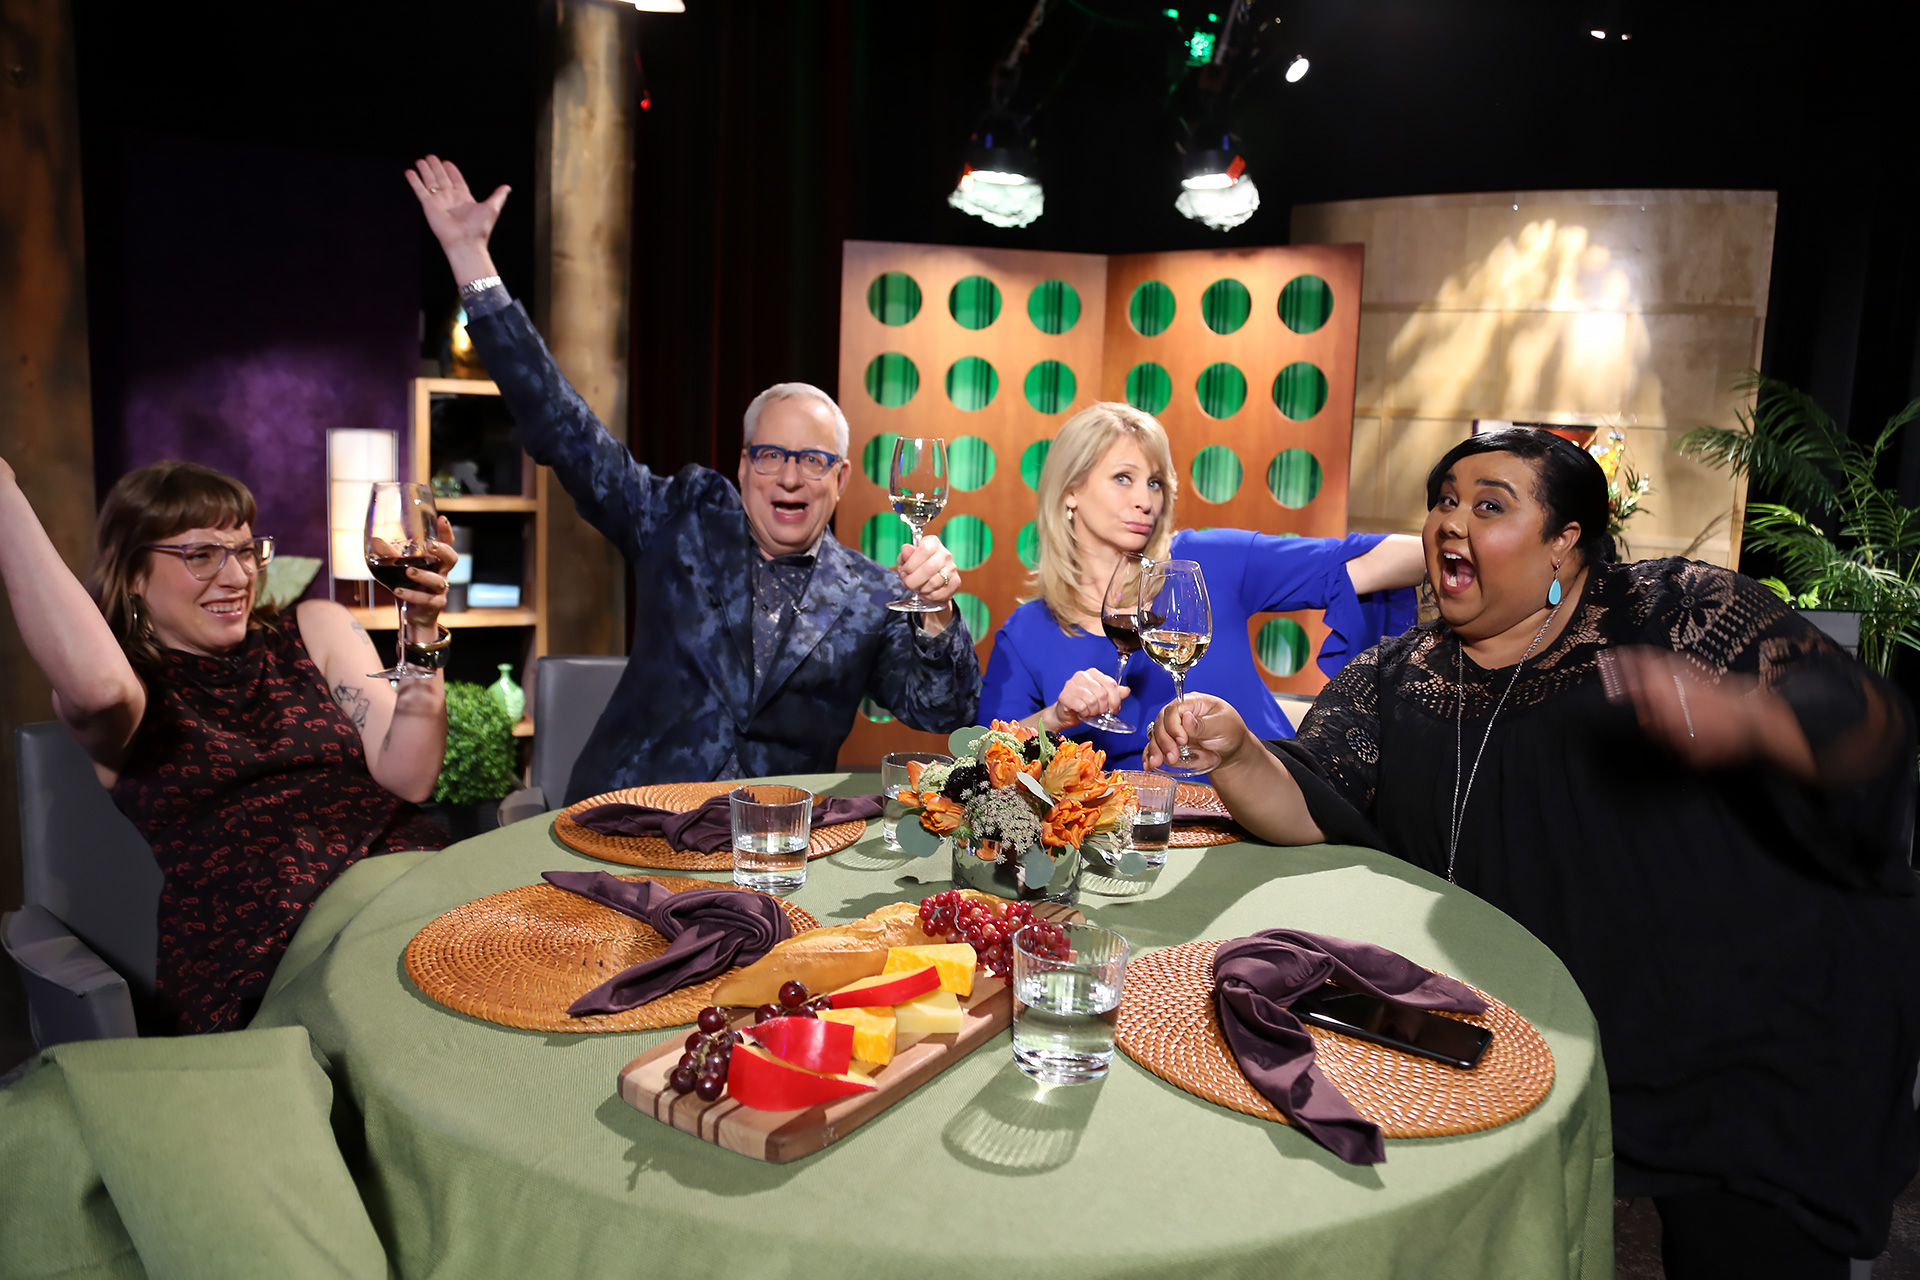 Host Leslie Sbrocco and guests having fun on the set of season 13 episode 6.